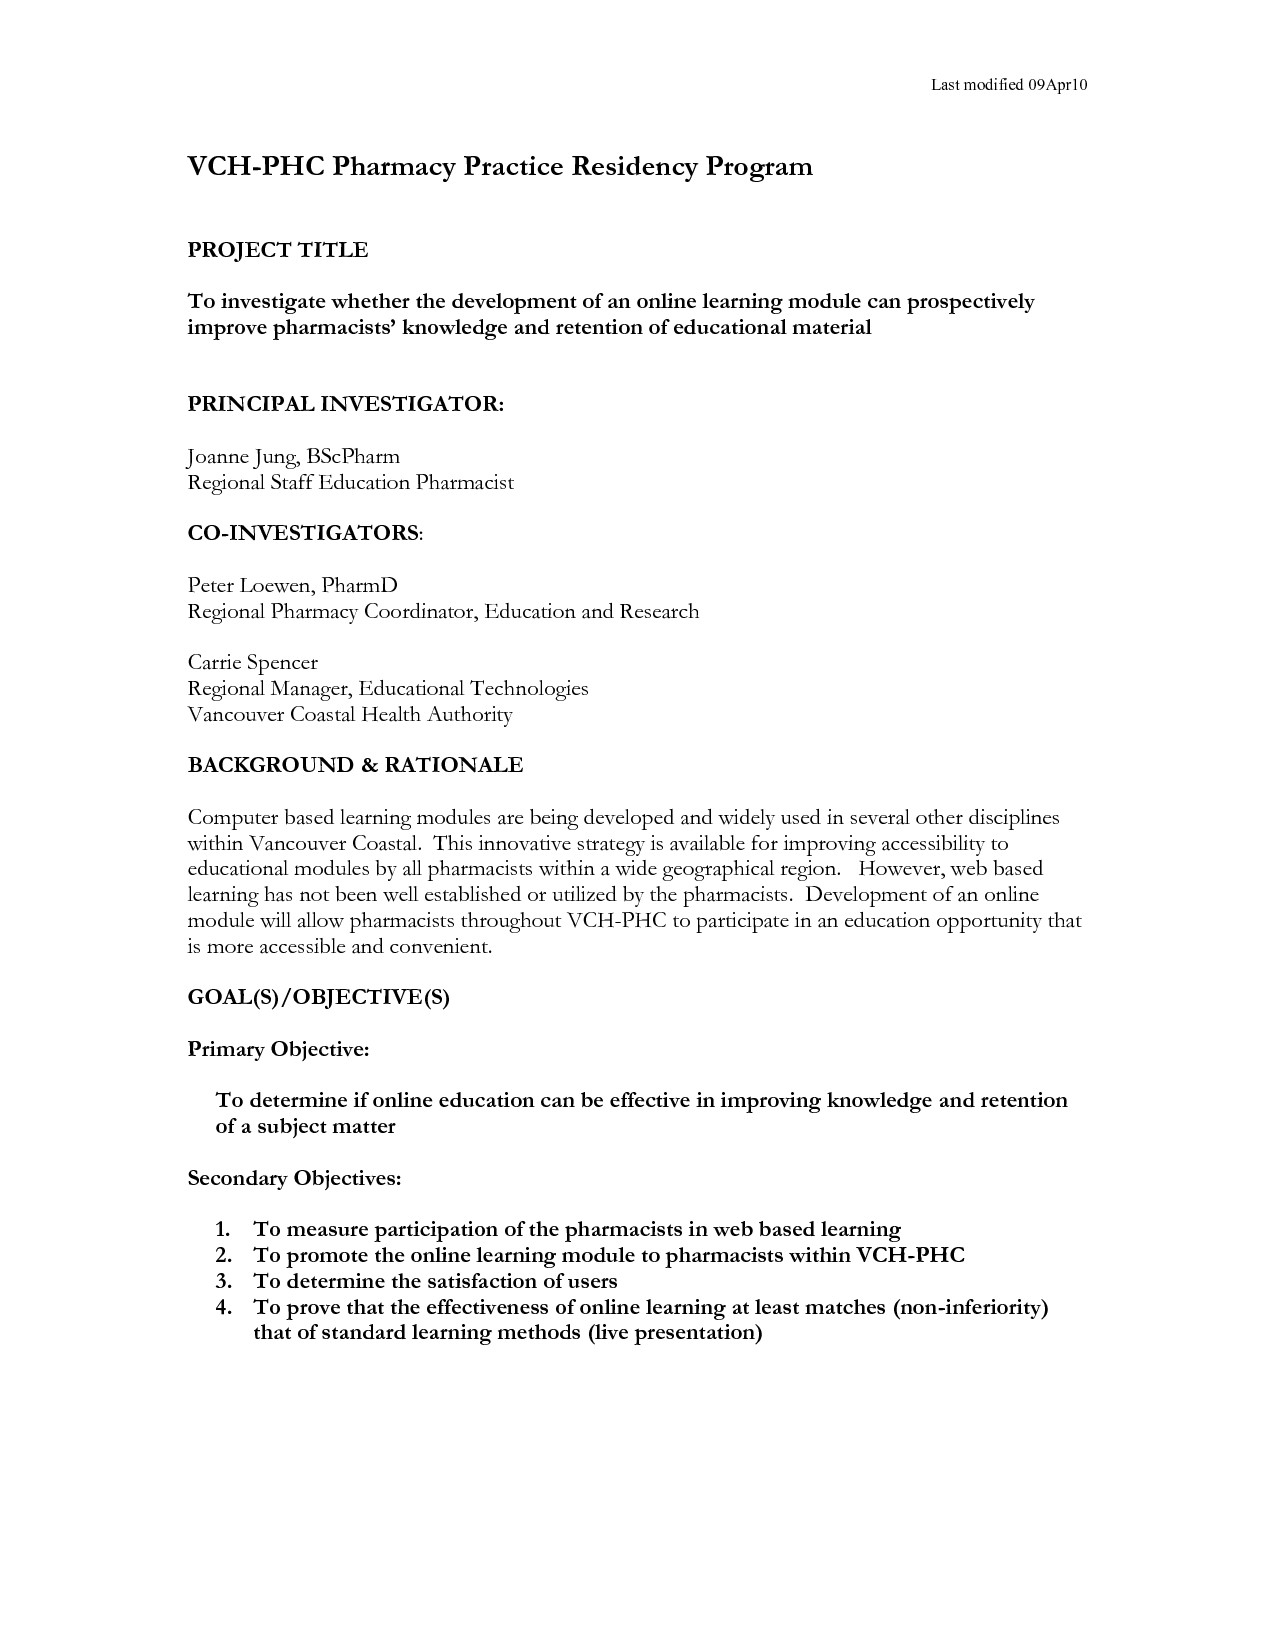 One Page Proposal Template Doc Research Proposal How to Write One